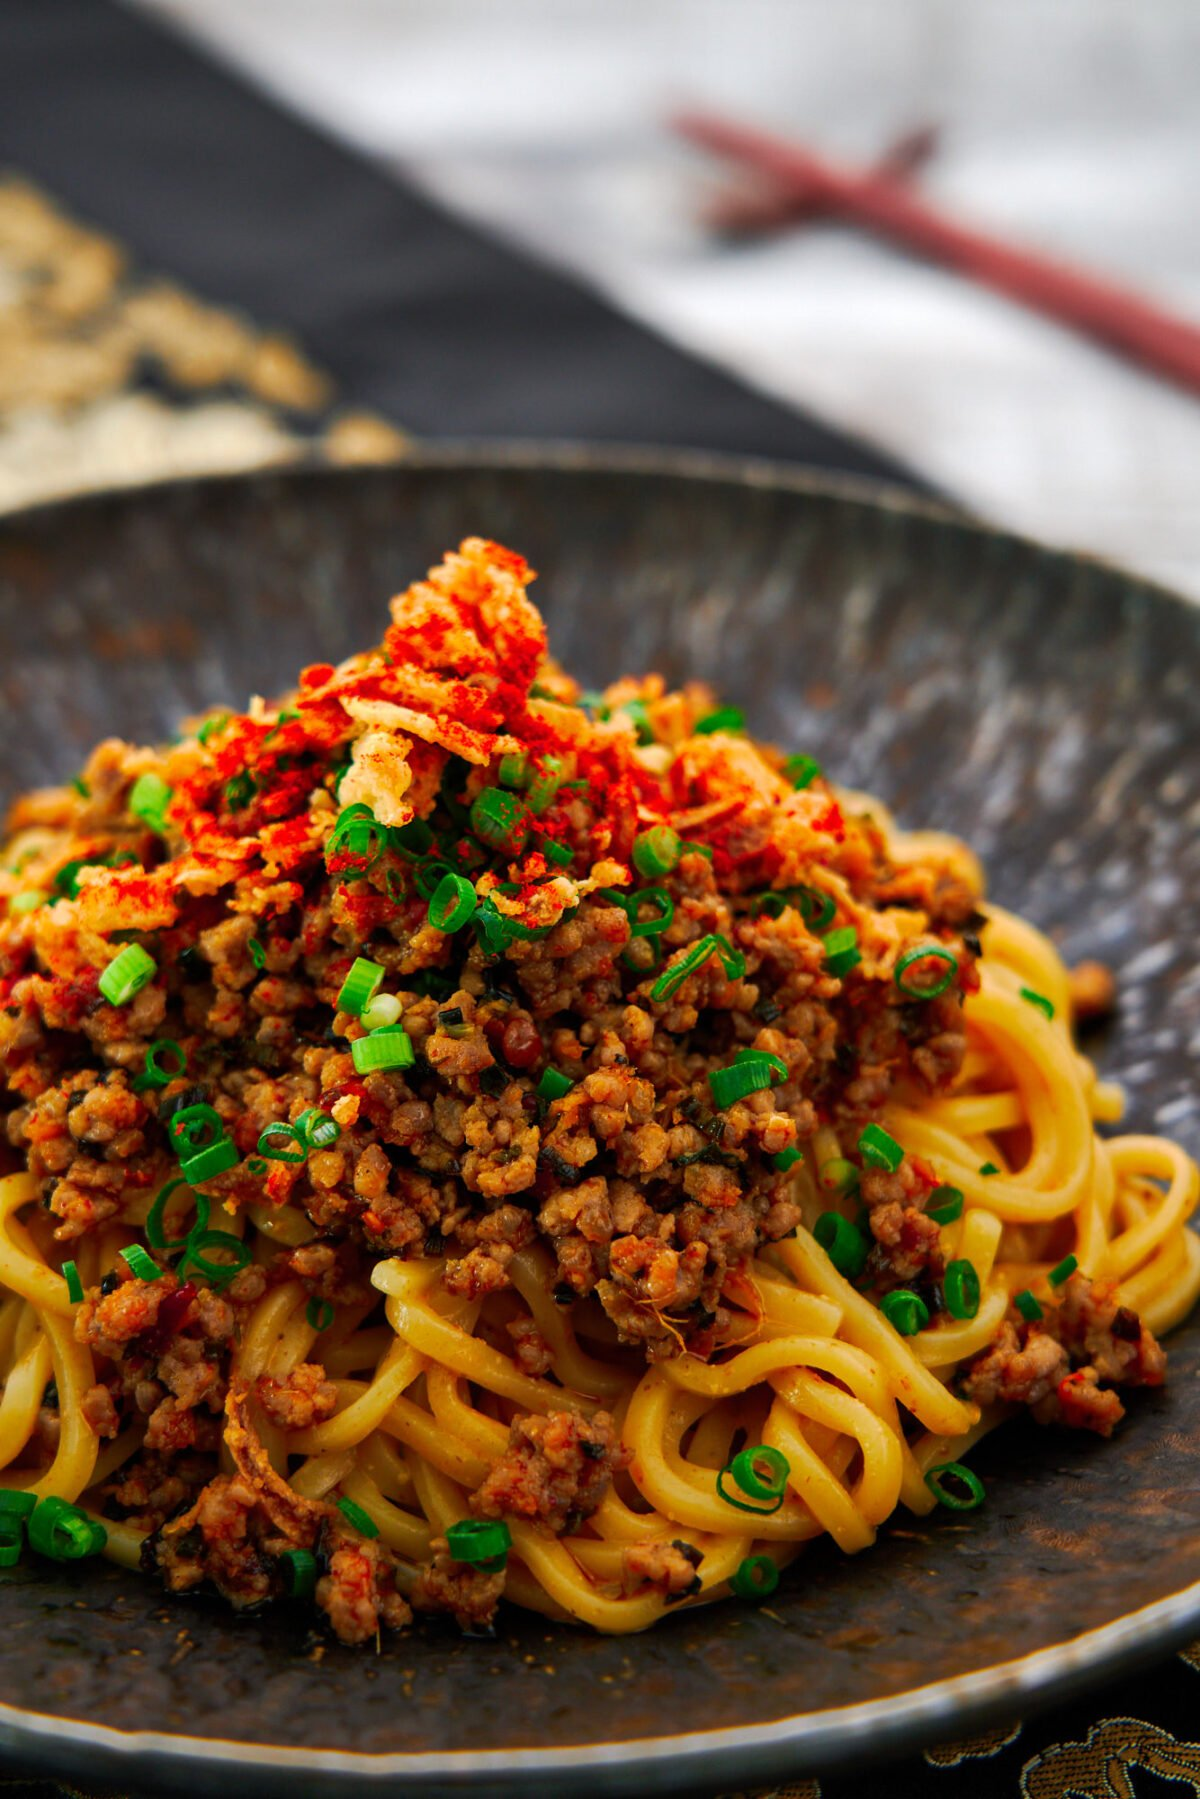 With ramen noodles tossed in creamy sesame sauce and topped with spicy stir-fried ground meat, this easy soupless Tantanmen Ramen comes together in only 15 minutes.